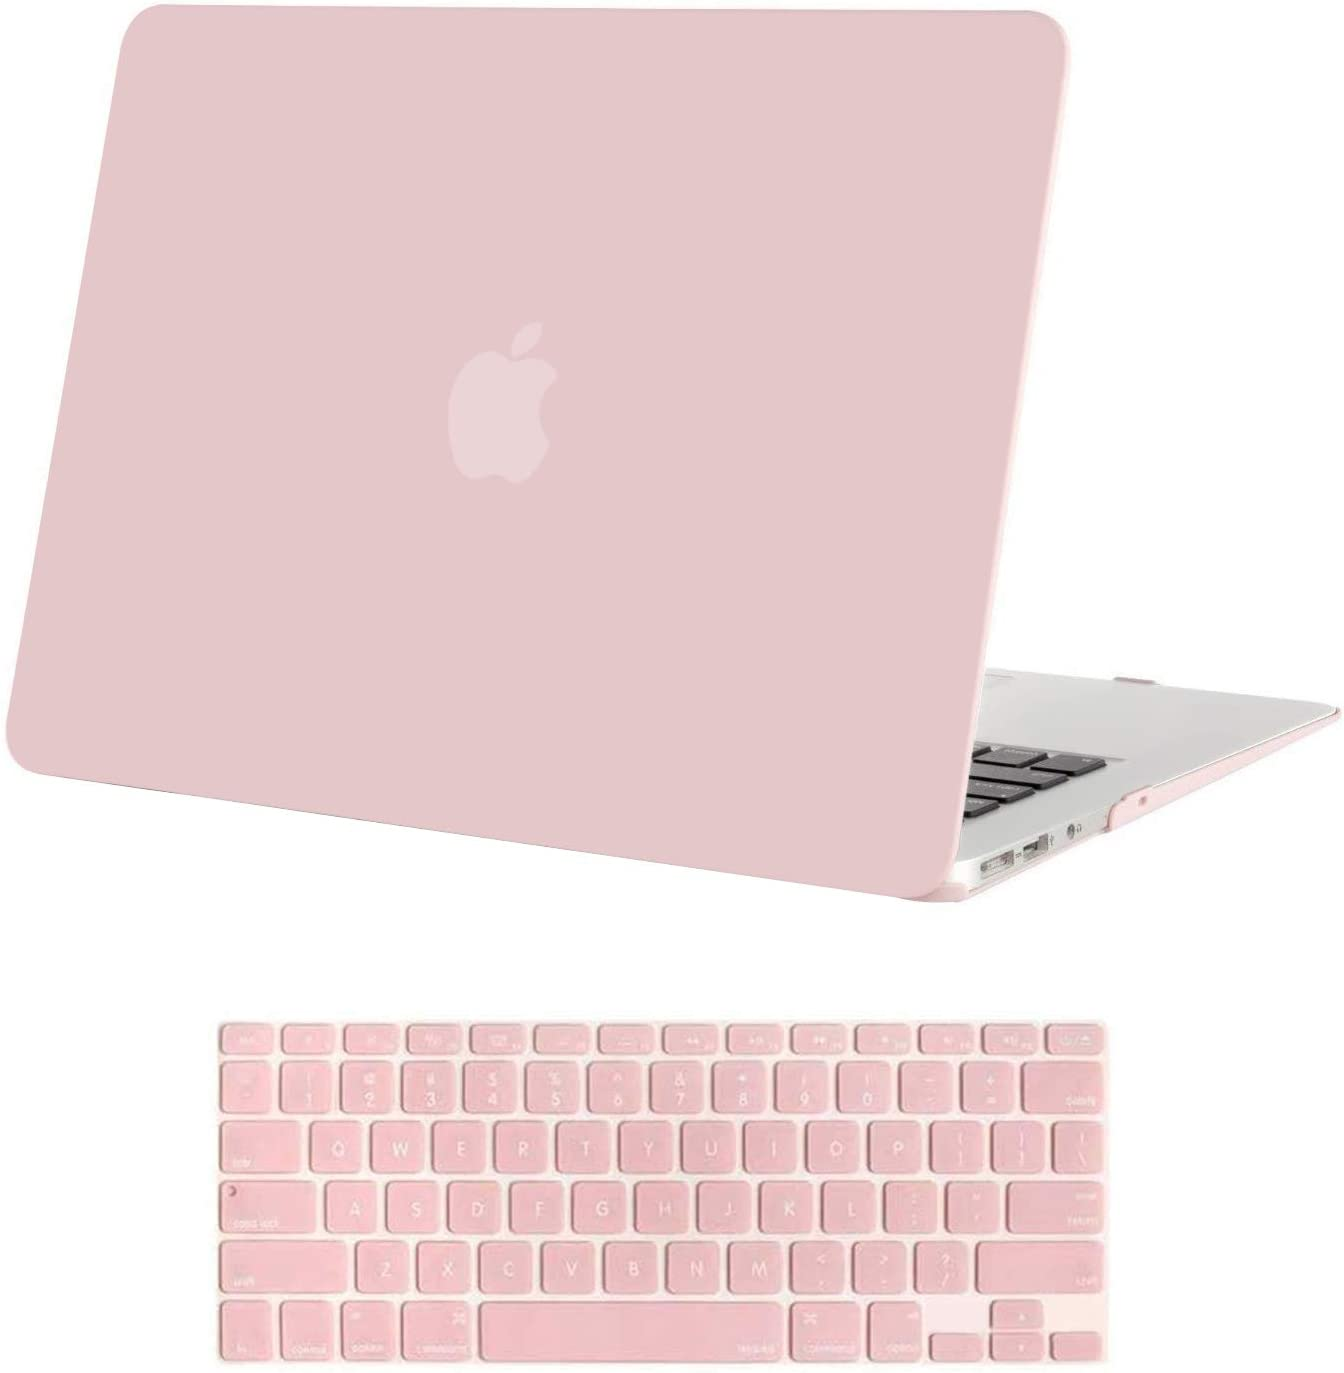 MOSISO MacBook Air 13 inch Case (Models: A1369 & A1466, Older Version 2010-2017 Release), Plastic Hard Shell Case & Keyboard Cover Skin Only Compatible with MacBook Air 13 inch, Rose Quartz